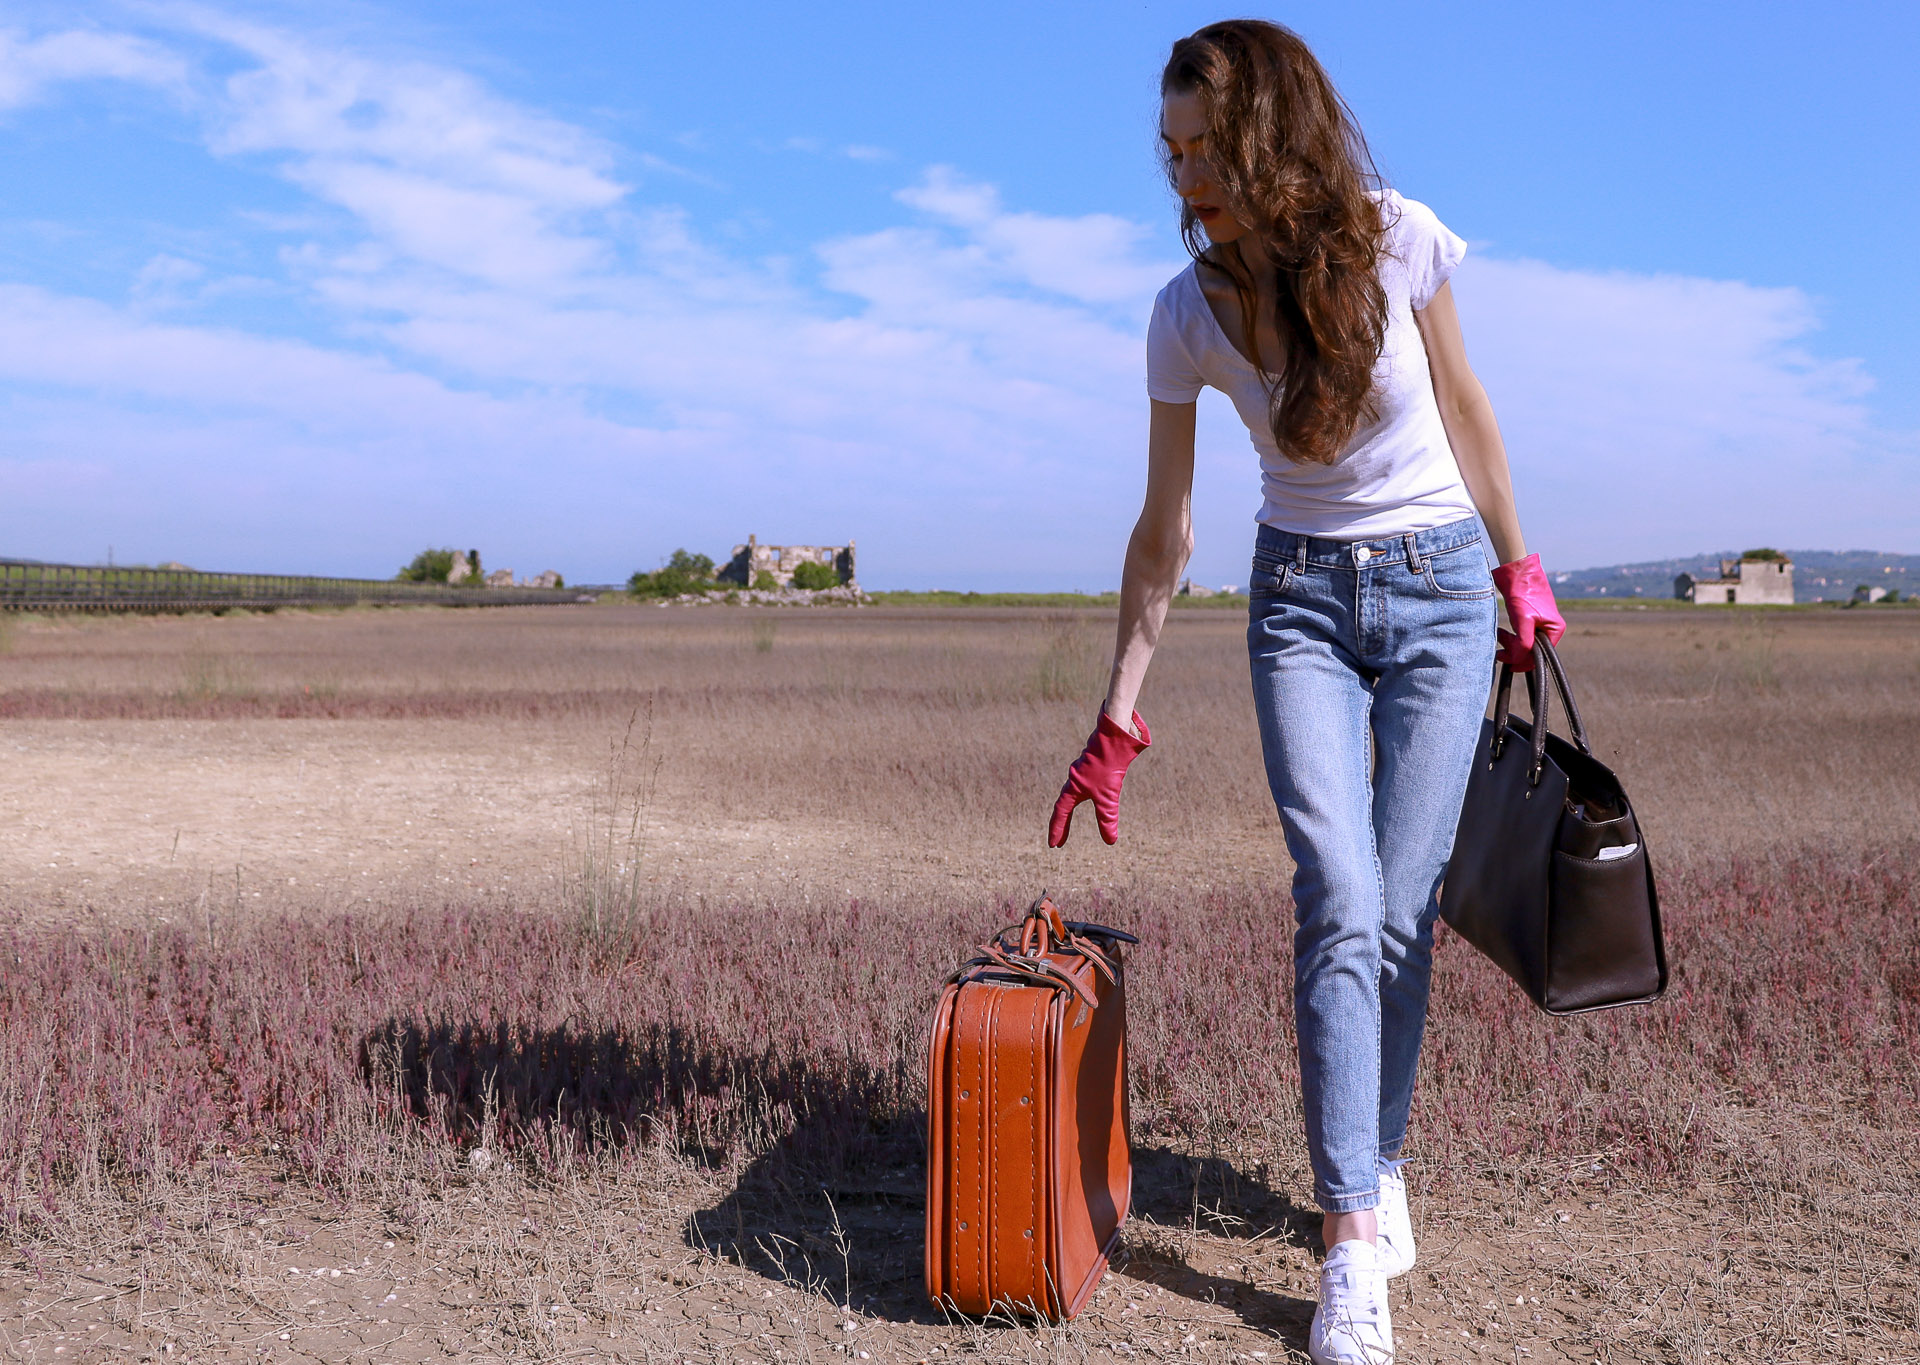 Popular fashion influencer Veronika Lipar of Brunette from Wall Street dressed in a.p.c. bleach denim jeans Diesel white sneakers white T-shirt pink leather gloves picking up Michael Kors sachets bag vintage suitcase standing in the middle of nowhere